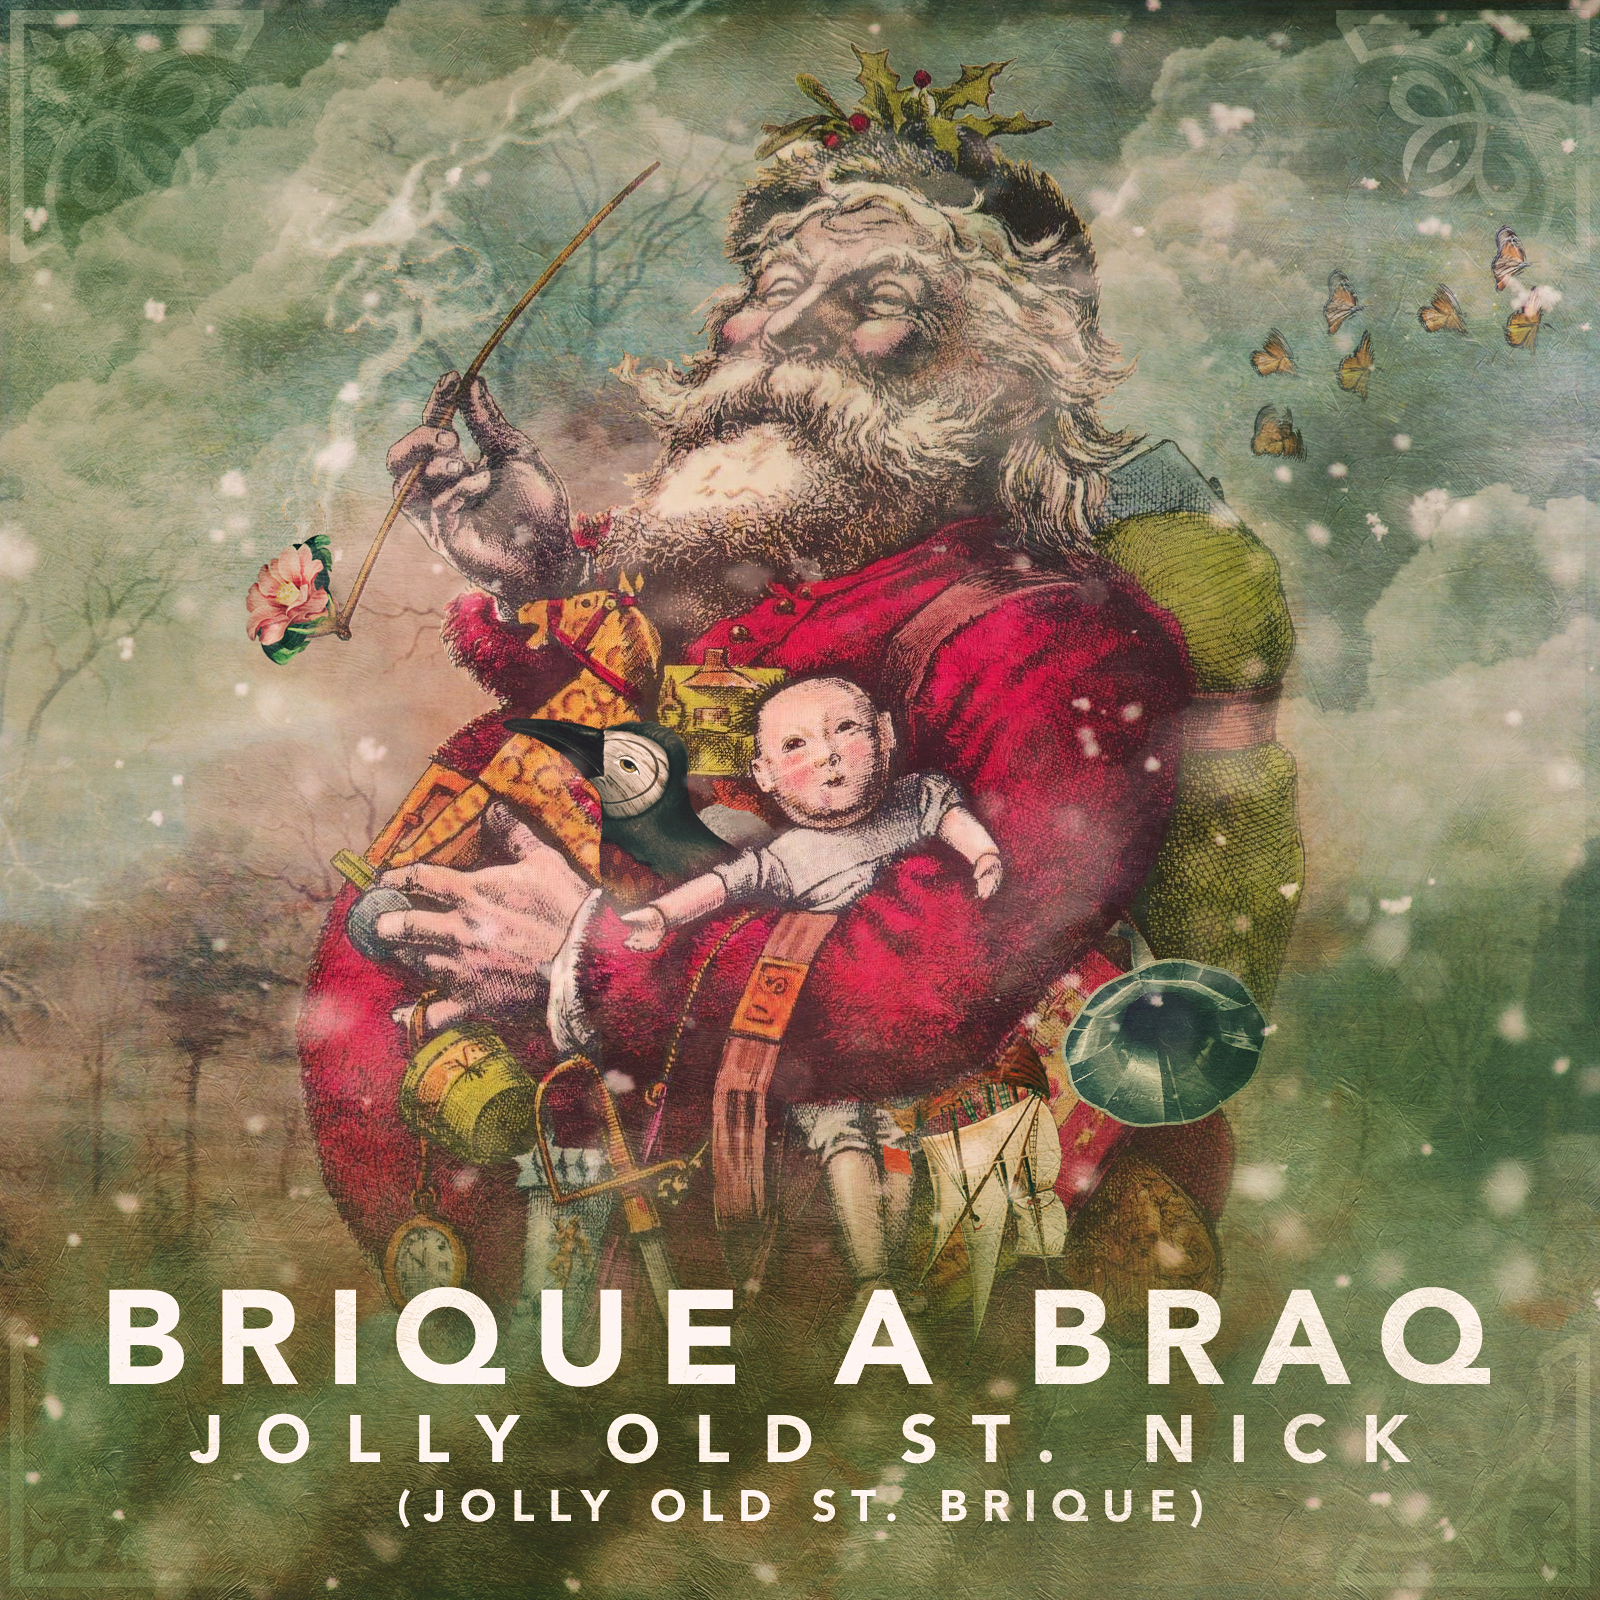 """Brique a Braq """"Jolly Old St. Nick (Jolly Old St. Brique)"""" 2018"""